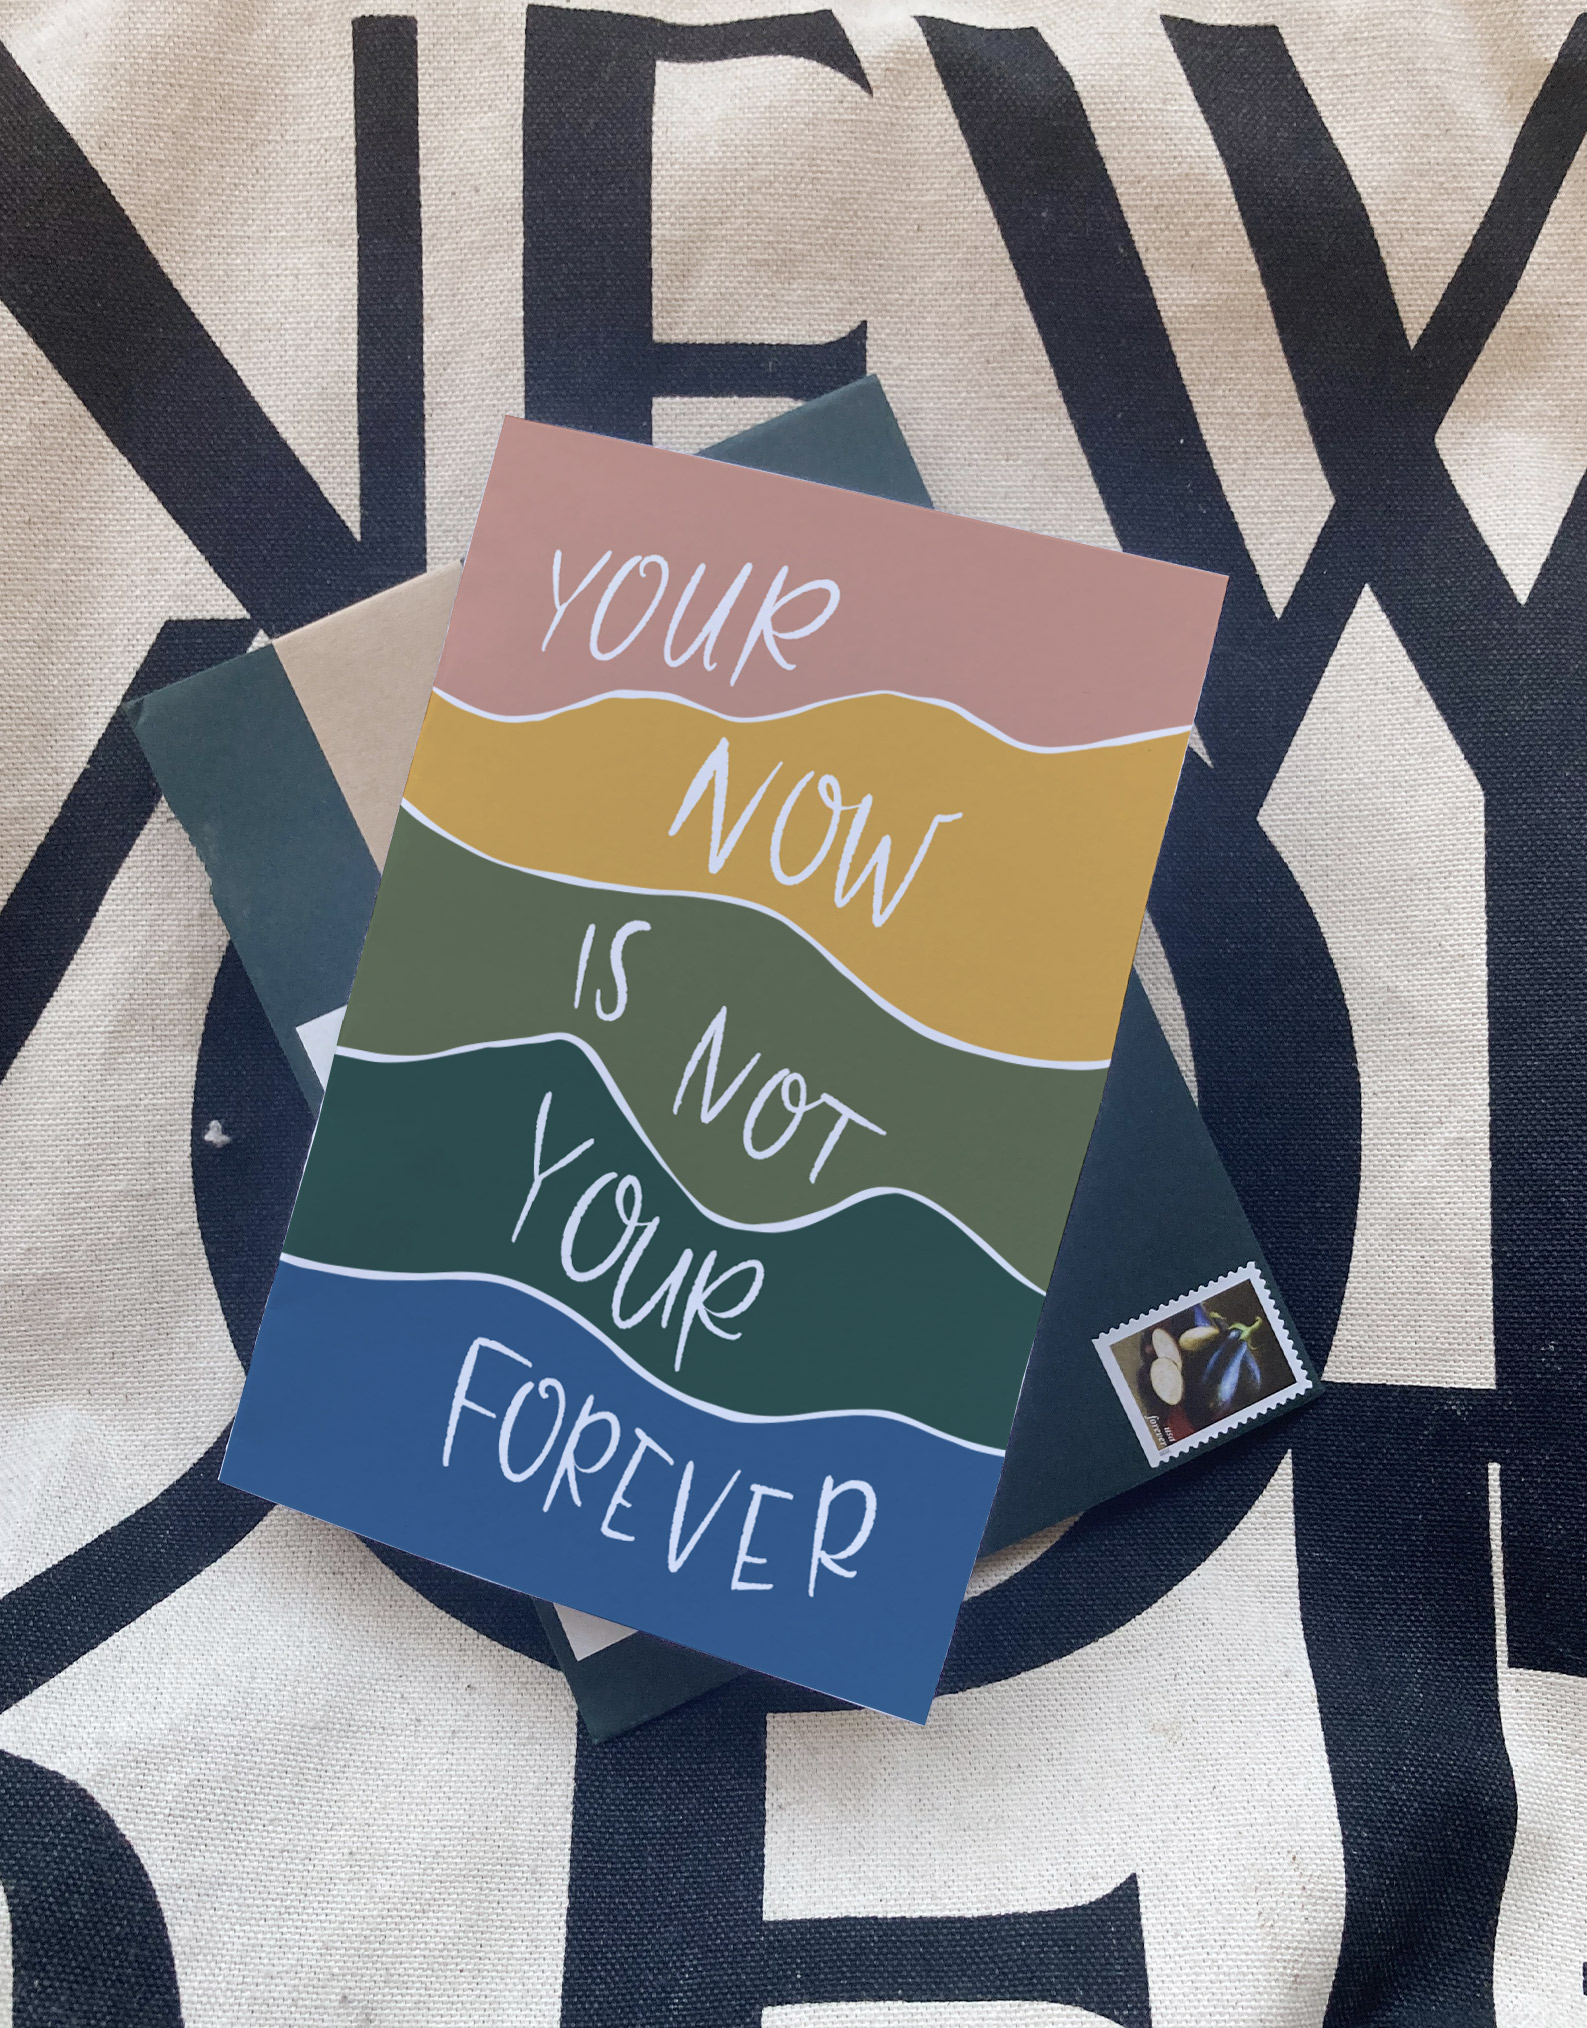 Your now is not your forever card image